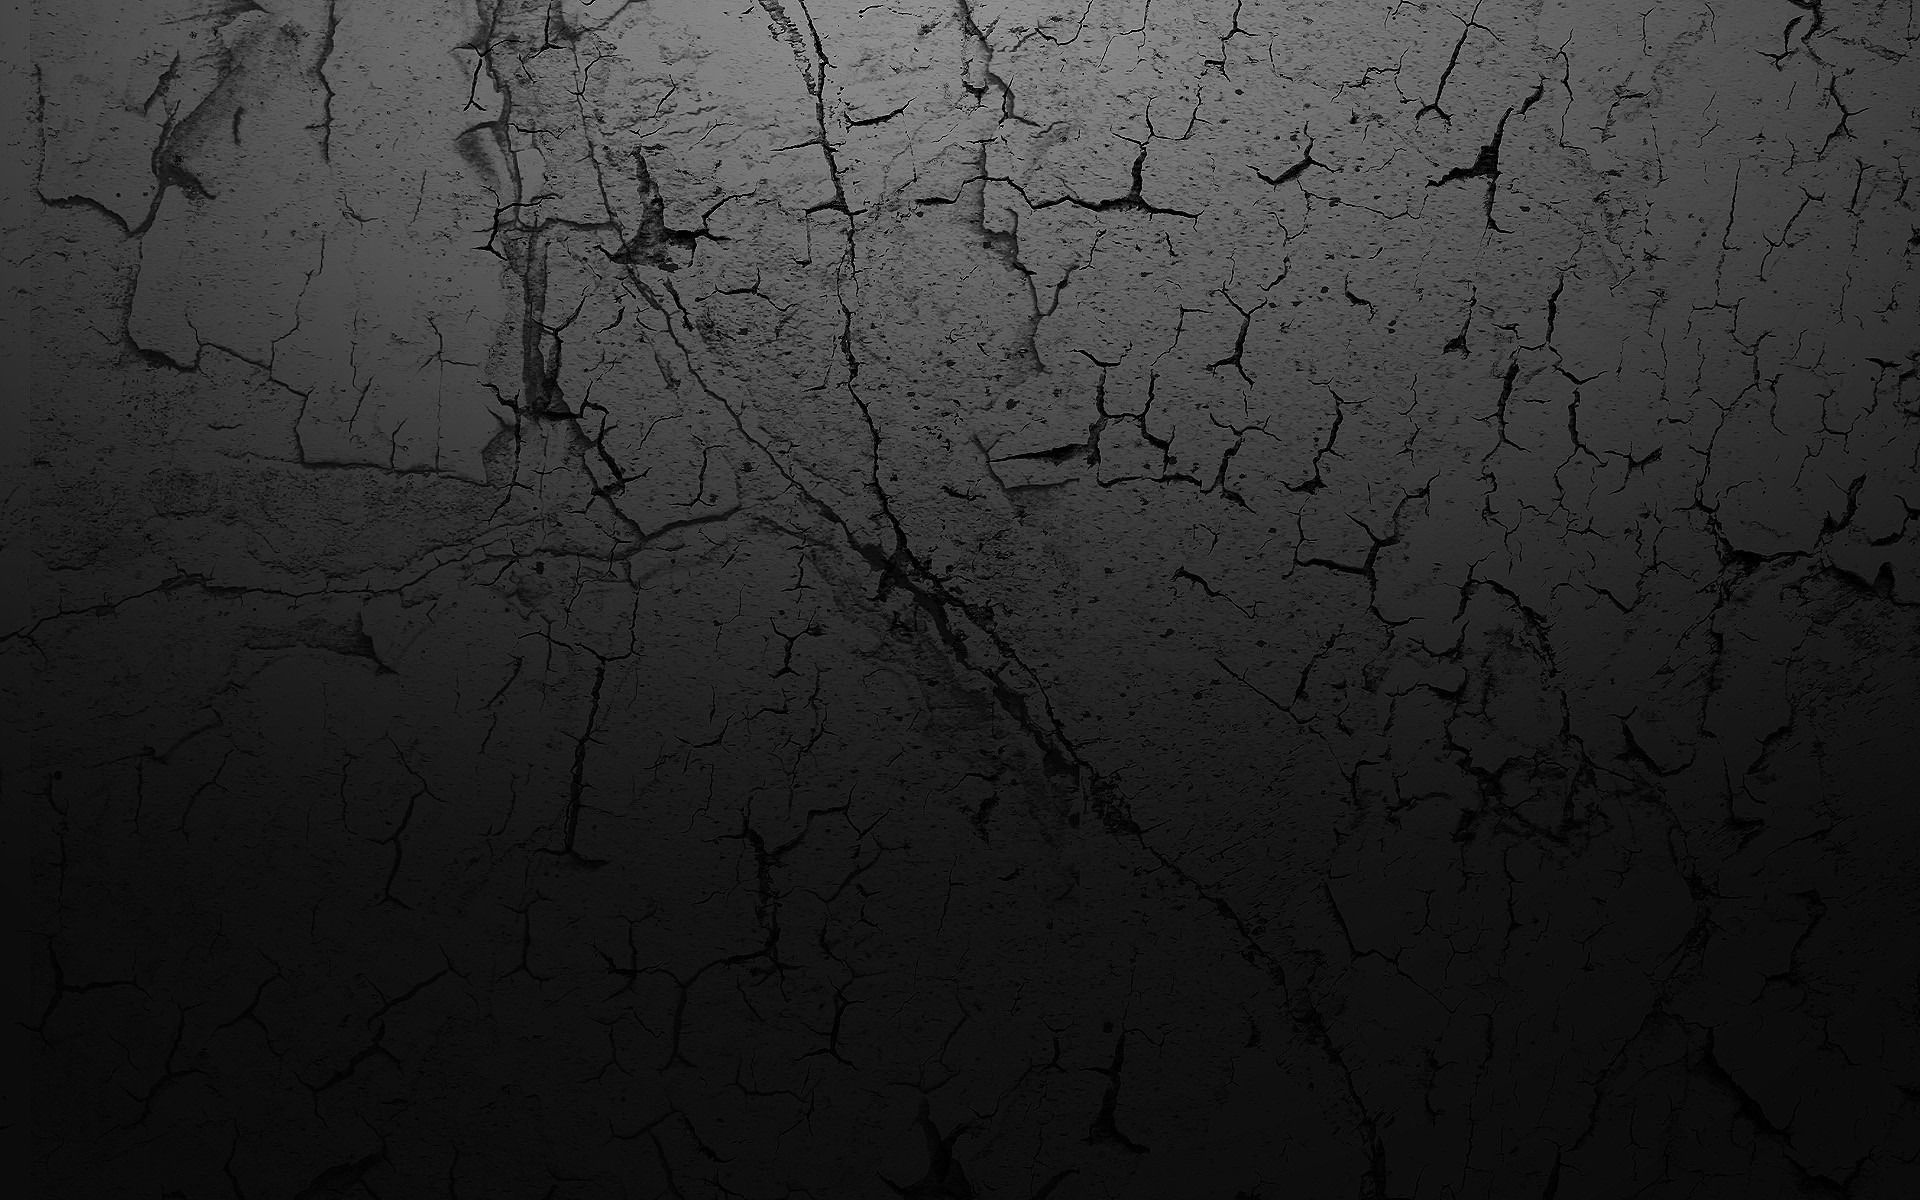 Background wallpaper - Cracked Texture Abstract Hd Desktop Wallpaper Texture Wallpaper Crack Wallpaper Abstract No